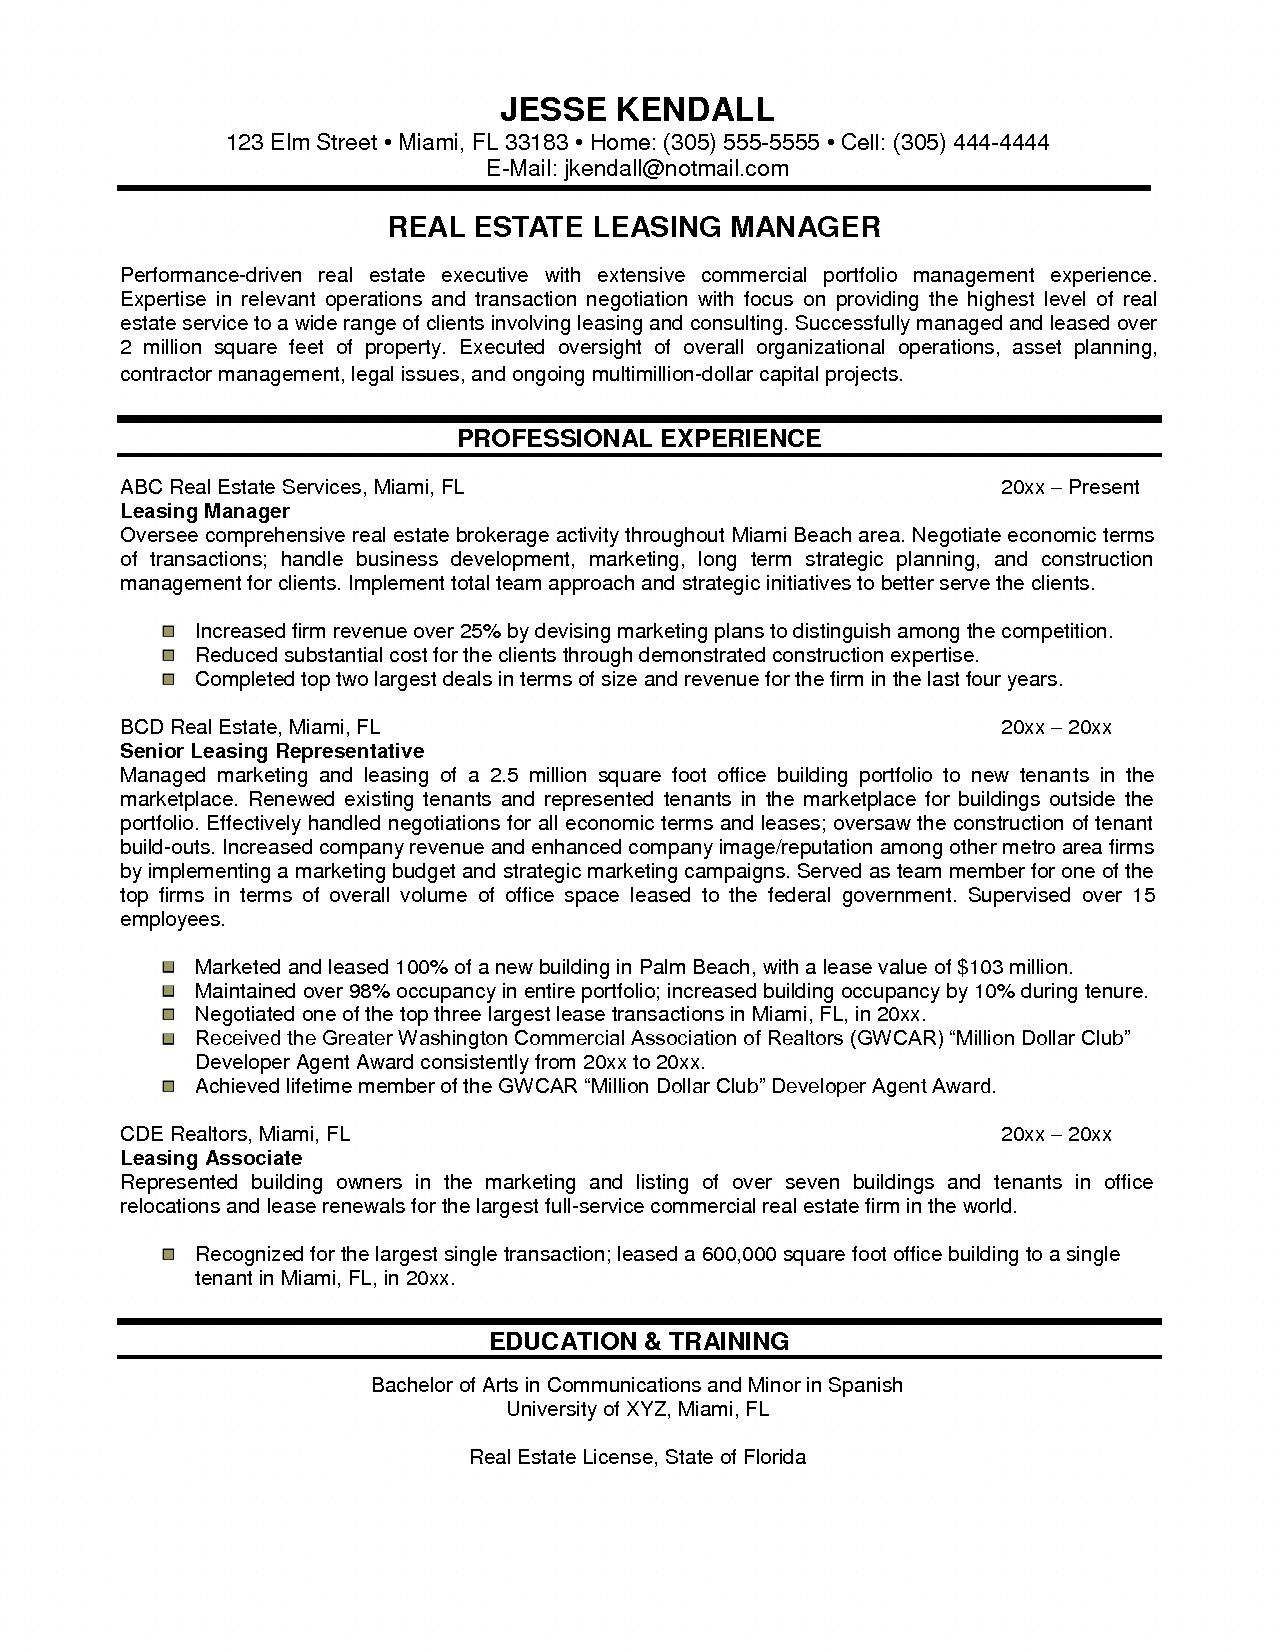 Purchasing Manager Resume Commercial Property Manager Resume Samples  Building Manager